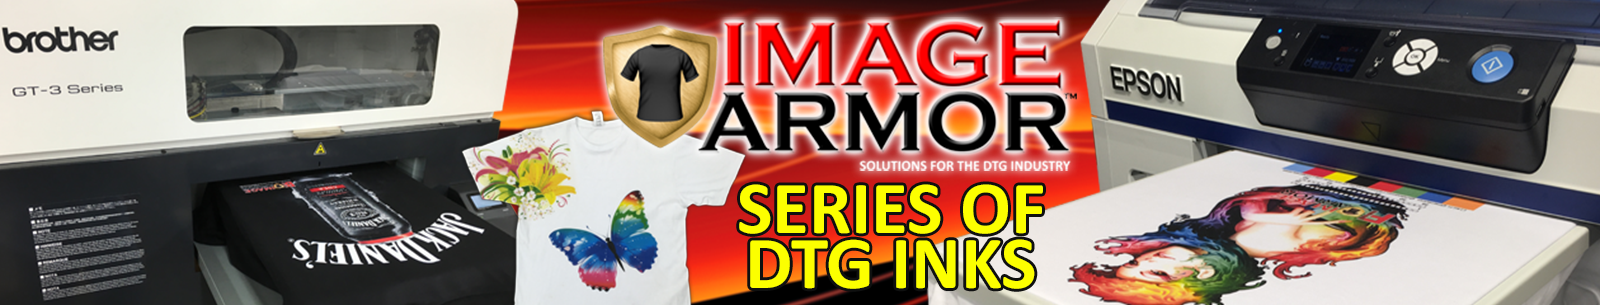 Image Armor Inks - Image Armor DTG Pretreatment Solutions